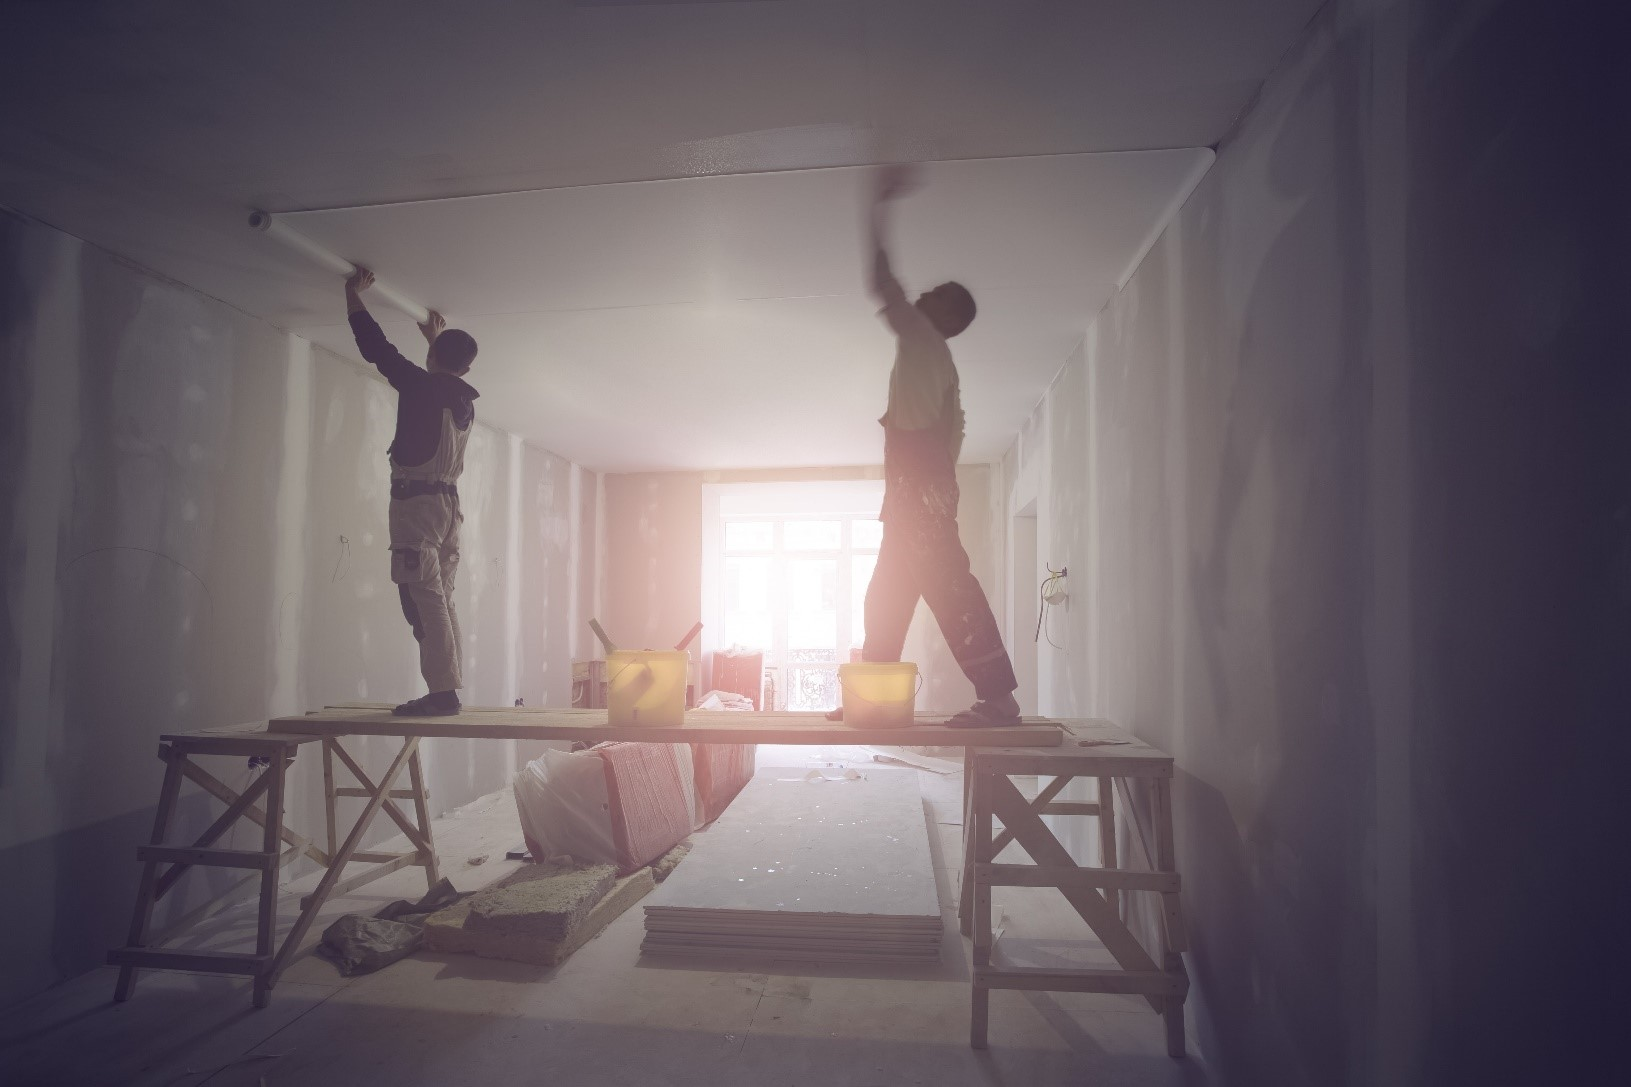 Two construction workers install a ceiling in a home renovation